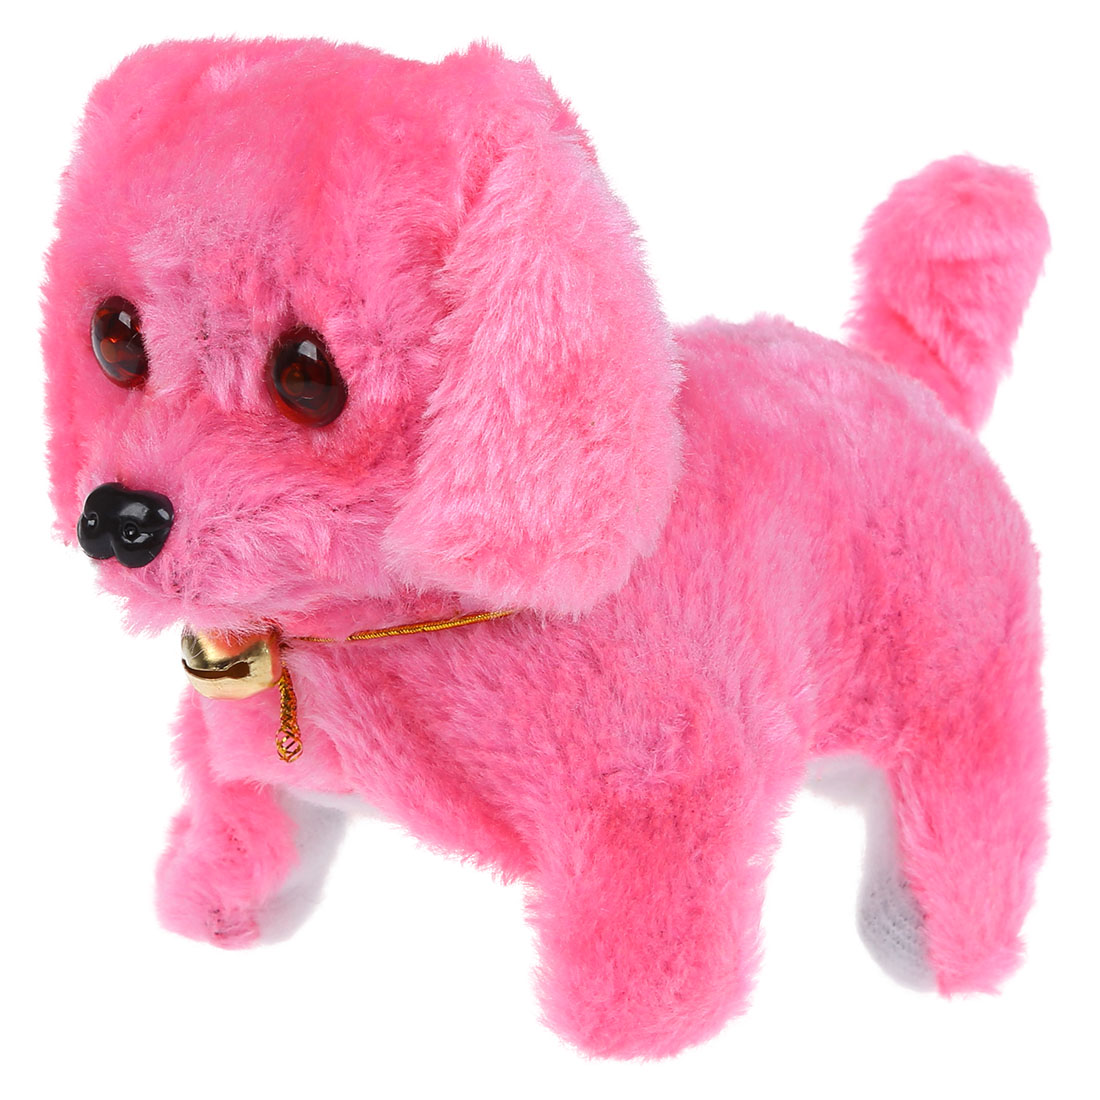 Dynamic Cute Pink Plush Neck Bell Walking Barking Electronic Dog Kids Child Toy Gift To Have A Long Historical Standing